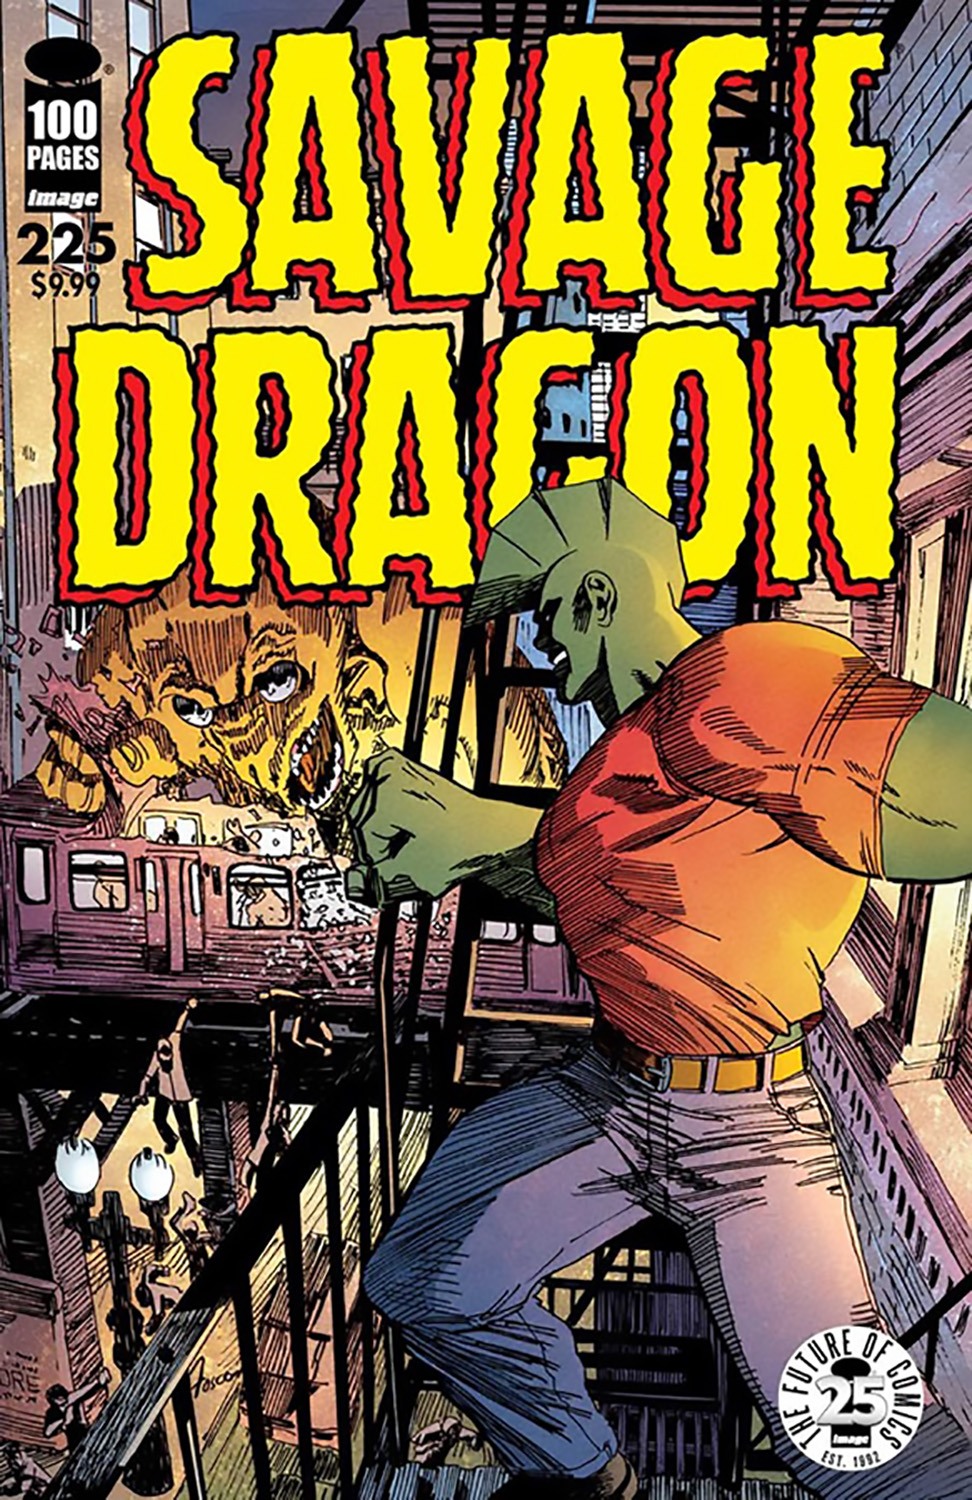 SAVAGE DRAGON #225 25TH ANNIVERSARY CVR B FOSCO